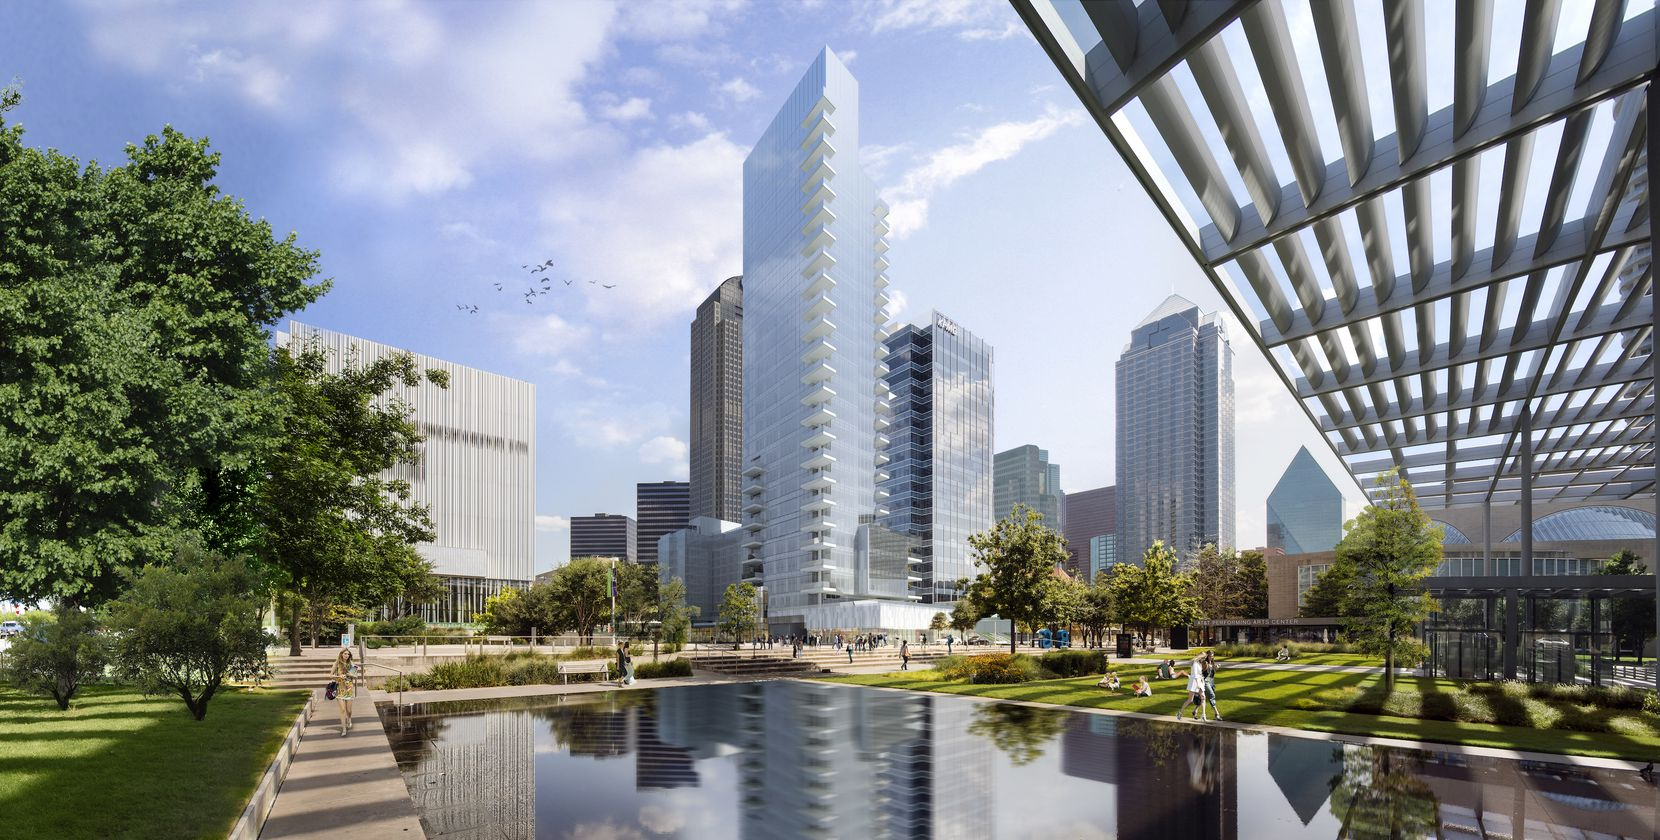 The 28-story high-rise is in downtown Dallas' Arts District.